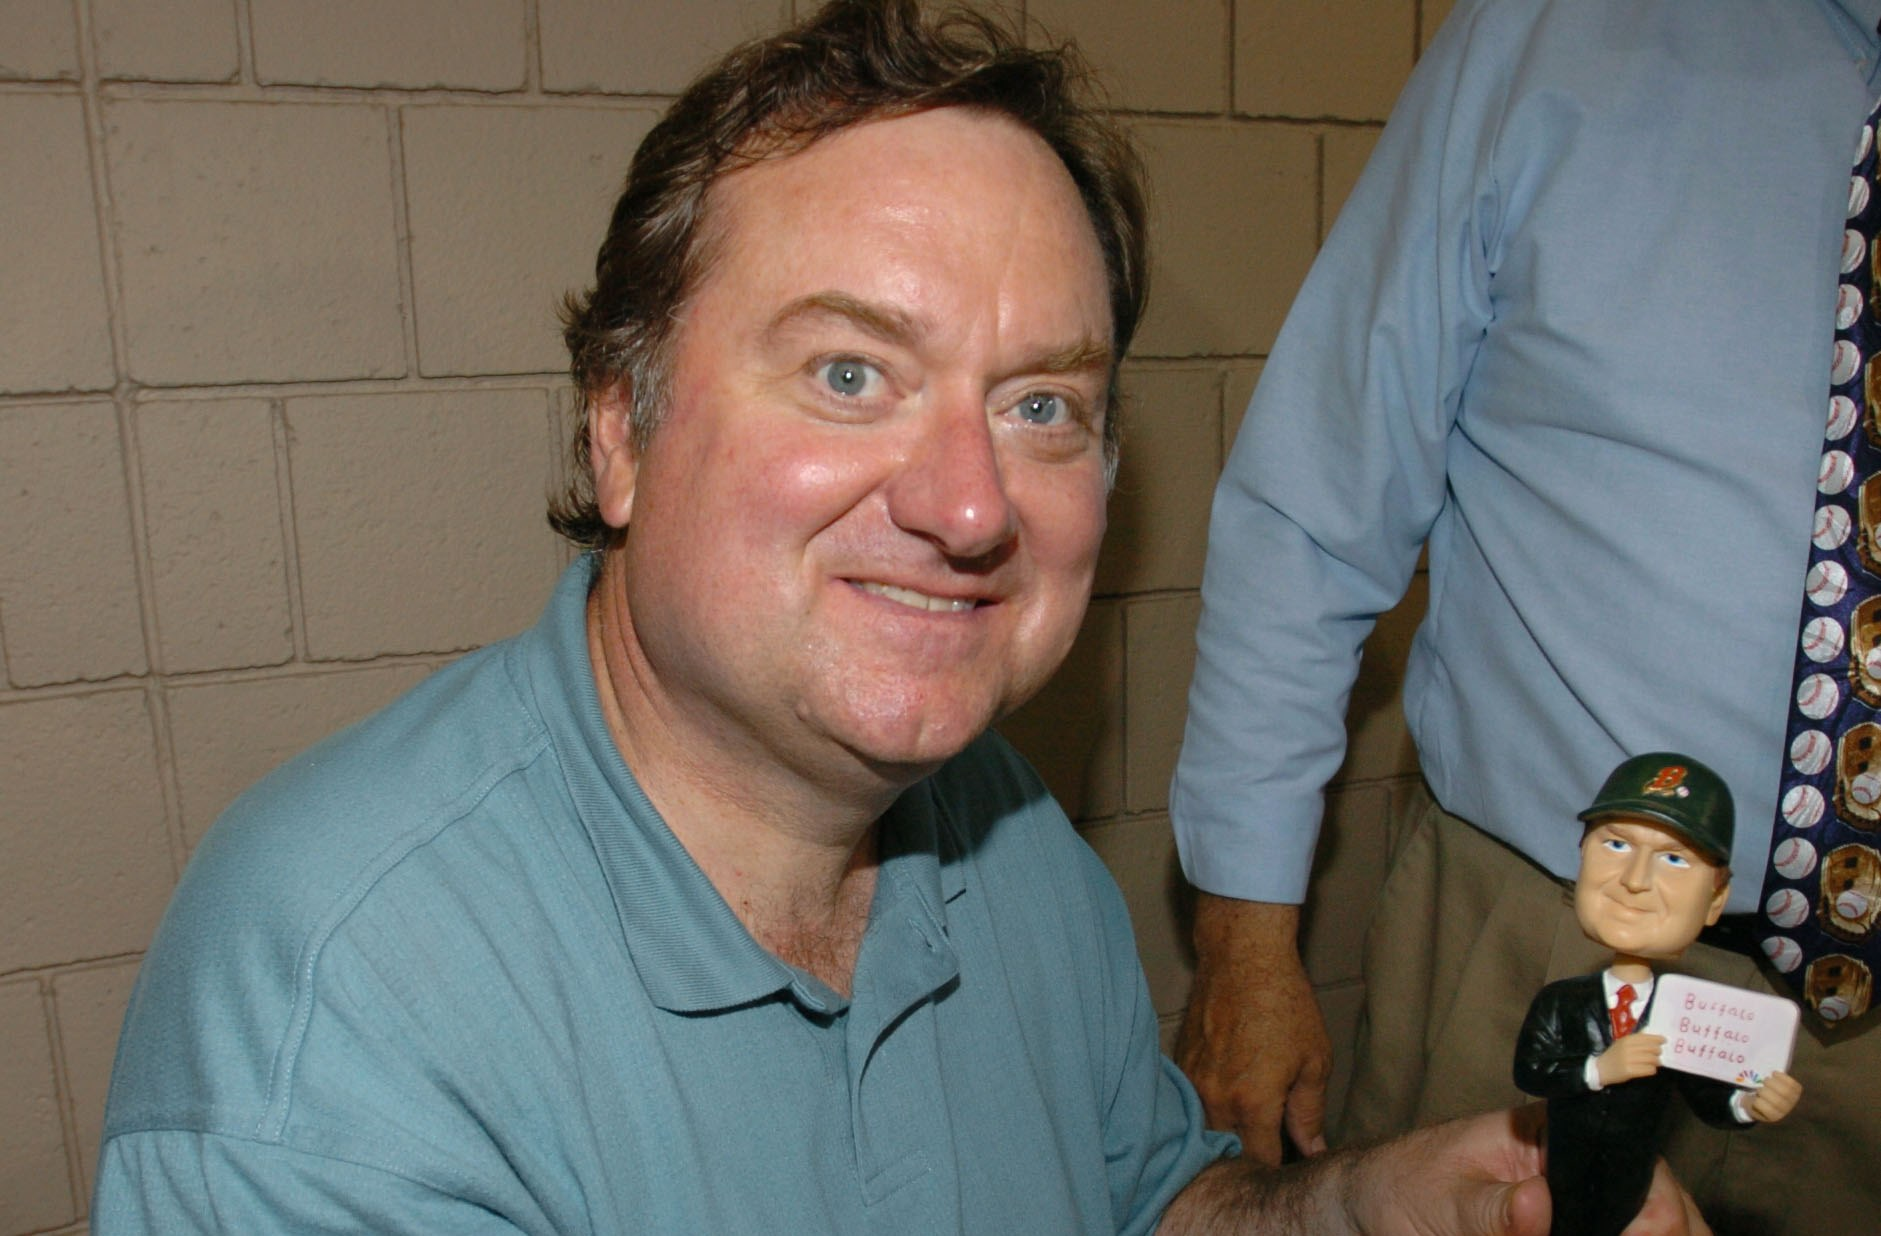 Tim Russert poses with his bobblehead doll that says 'Buffalo, Buffalo, Buffalo' on June 4, 2005, at a Buffalo Bisons game. (James P. McCoy/Buffalo News)